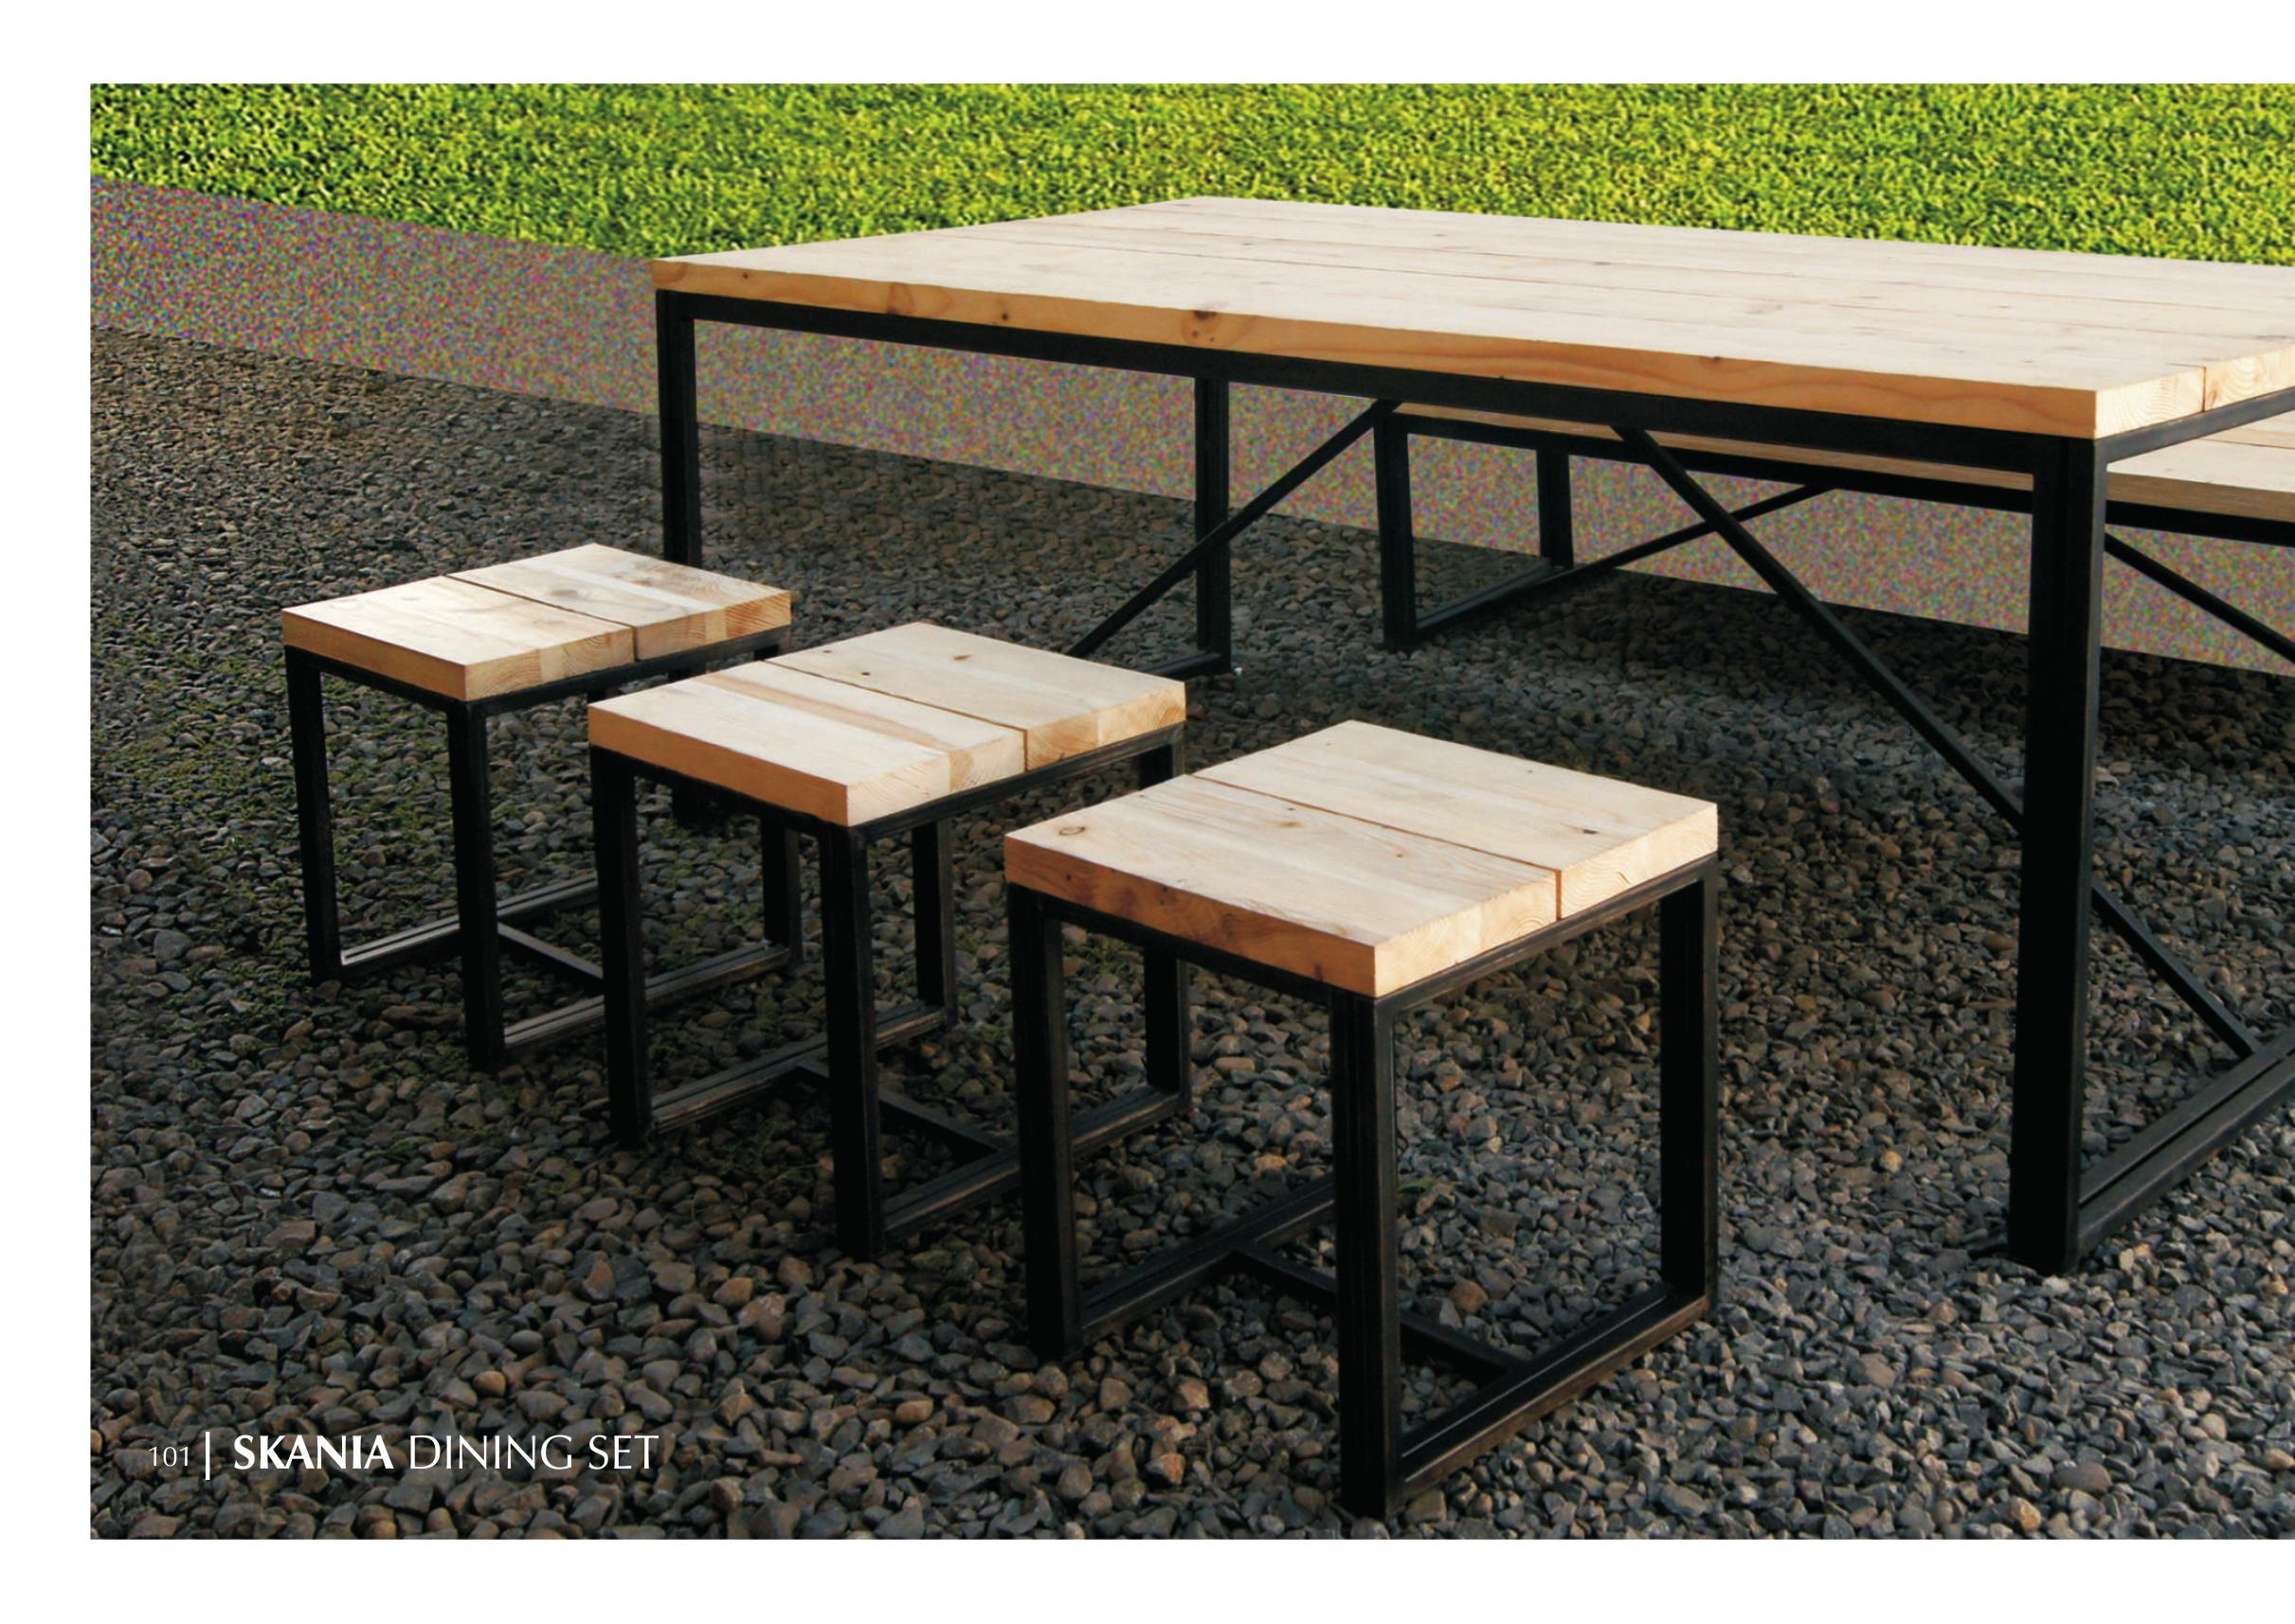 Skania wooden dining Set